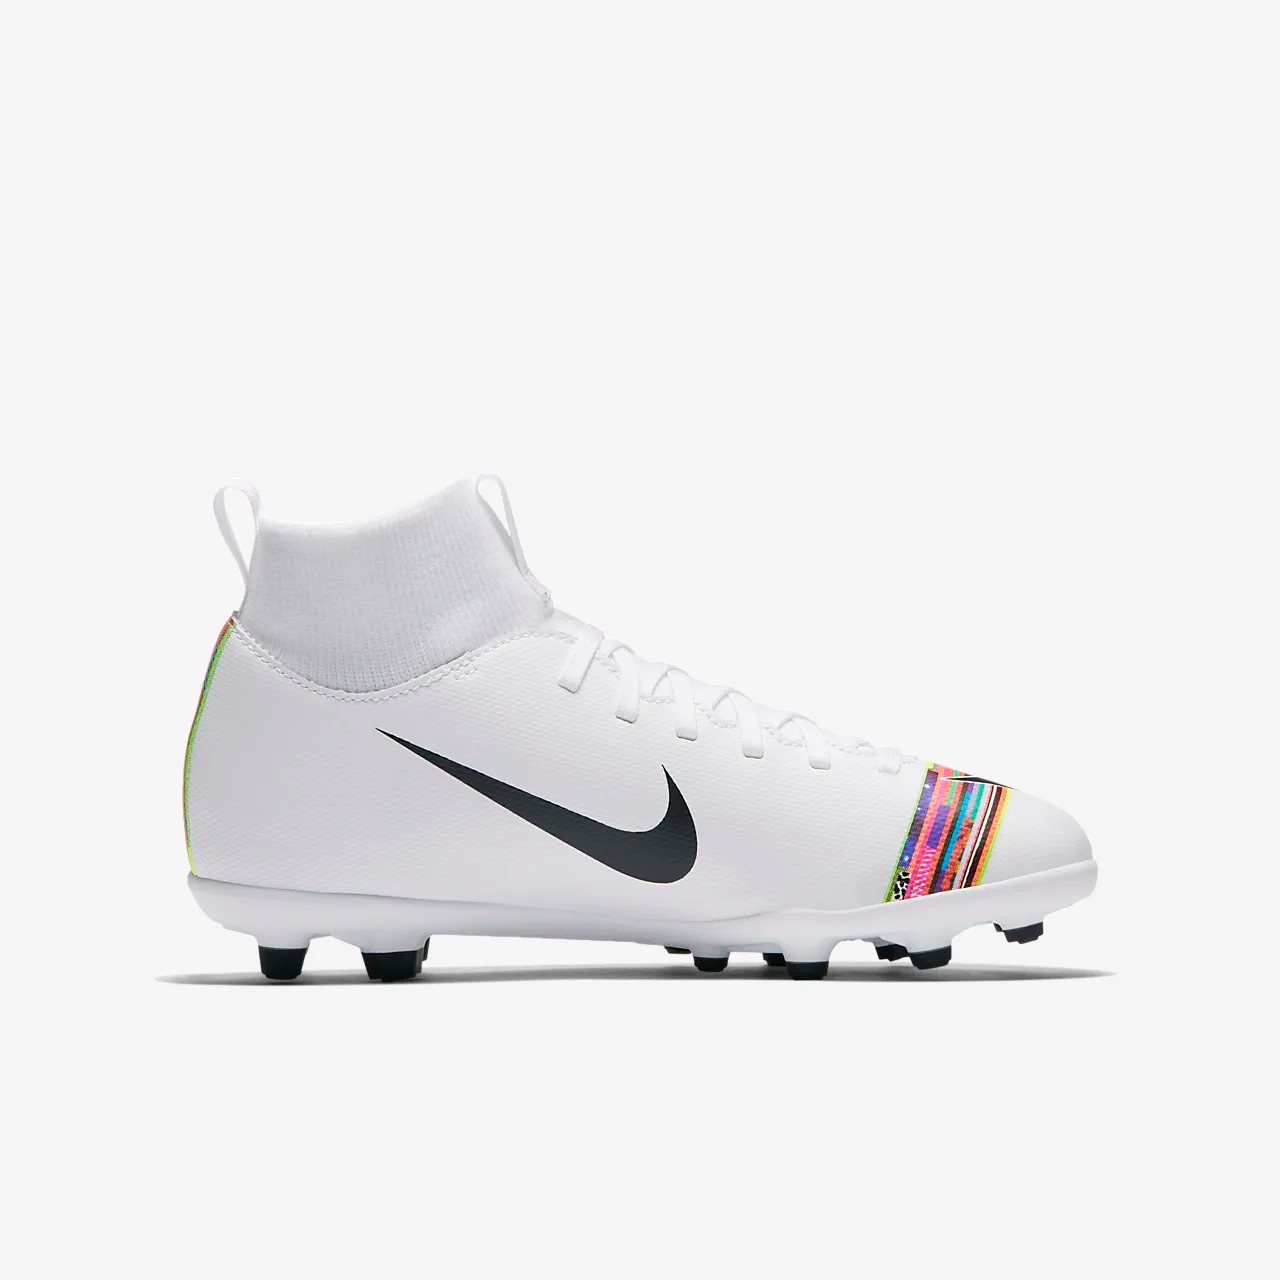 0e5db796e Nike Jr. Superfly 6 Club FG/MG - Soccer Cleats CR7 Ronaldo Football Cleats  - Superfanas.lt